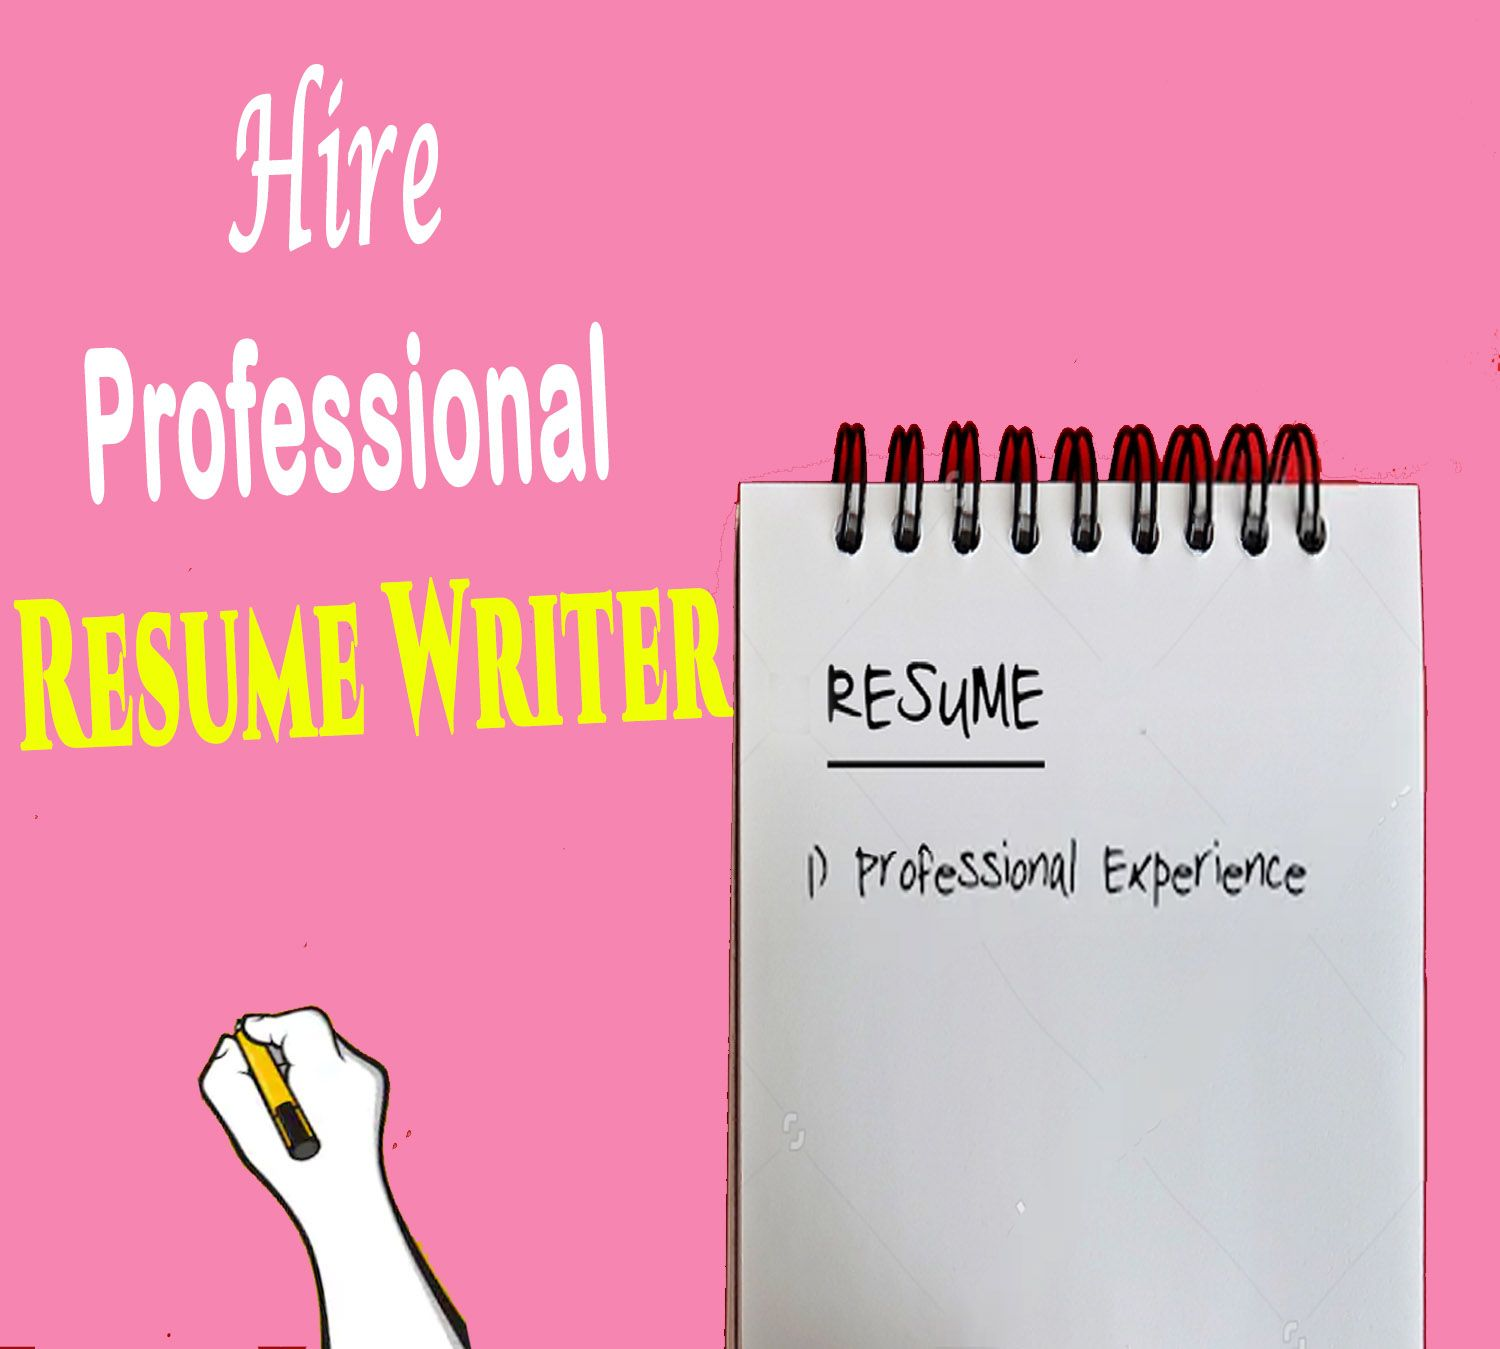 Hire Professional Resume Writer in 2020 Professional